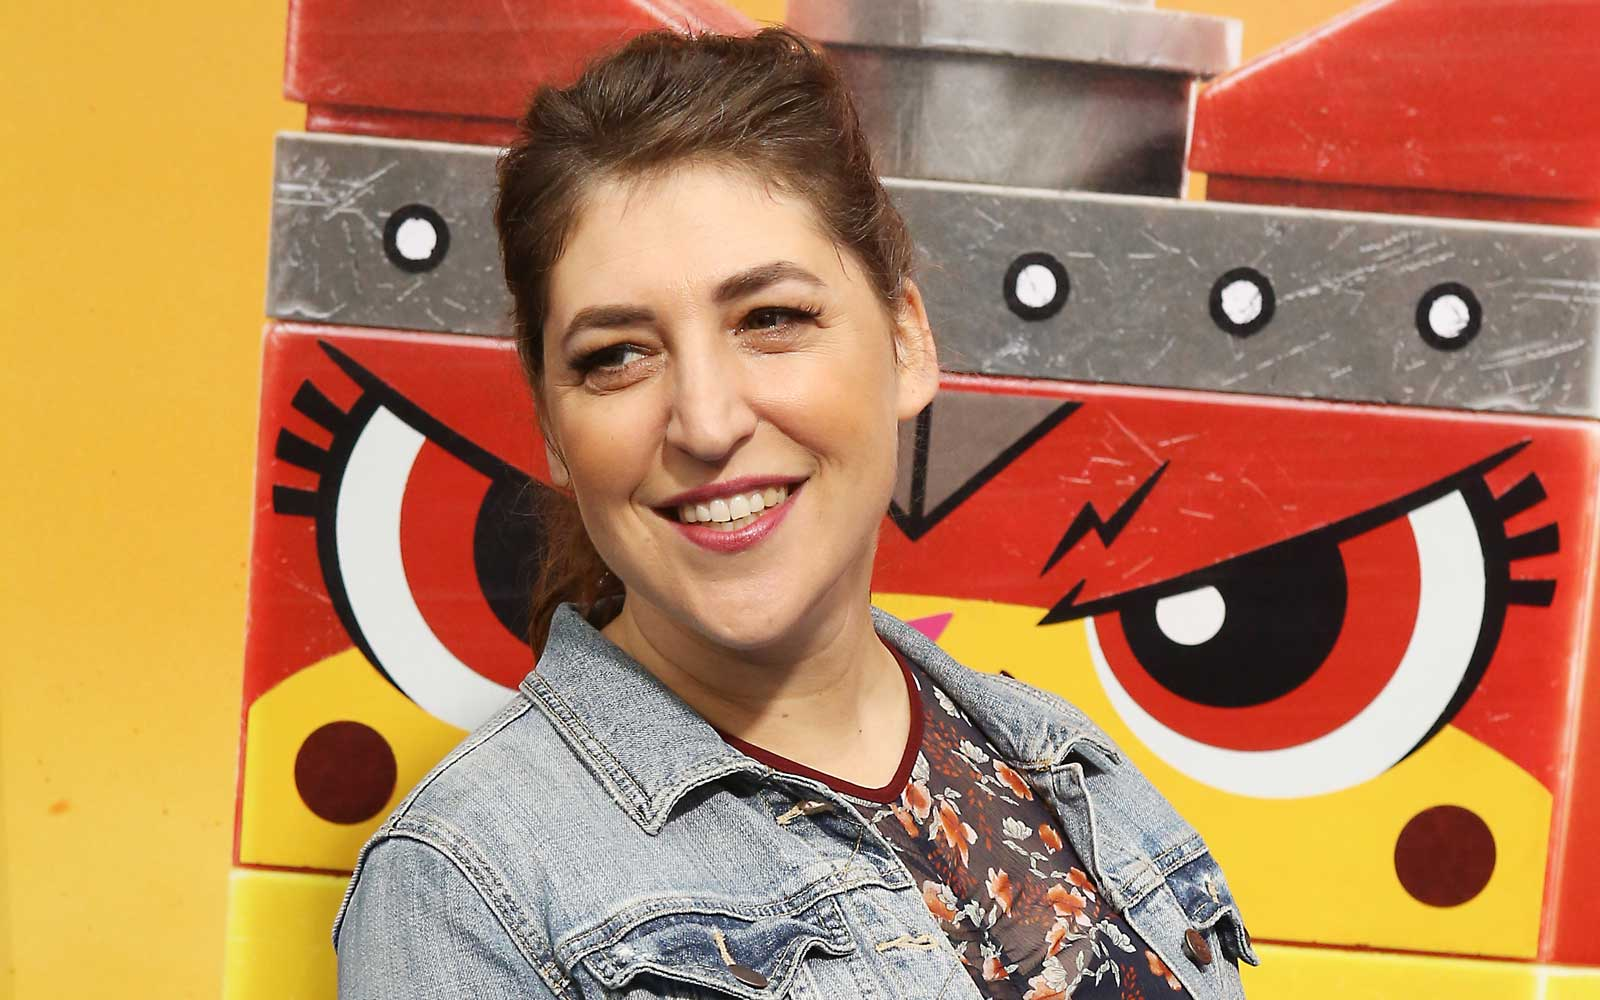 'Big Bang Theory' Actress Mayim Bialik Went on a Twitter Rant About United Airlines After Being Denied Boarding